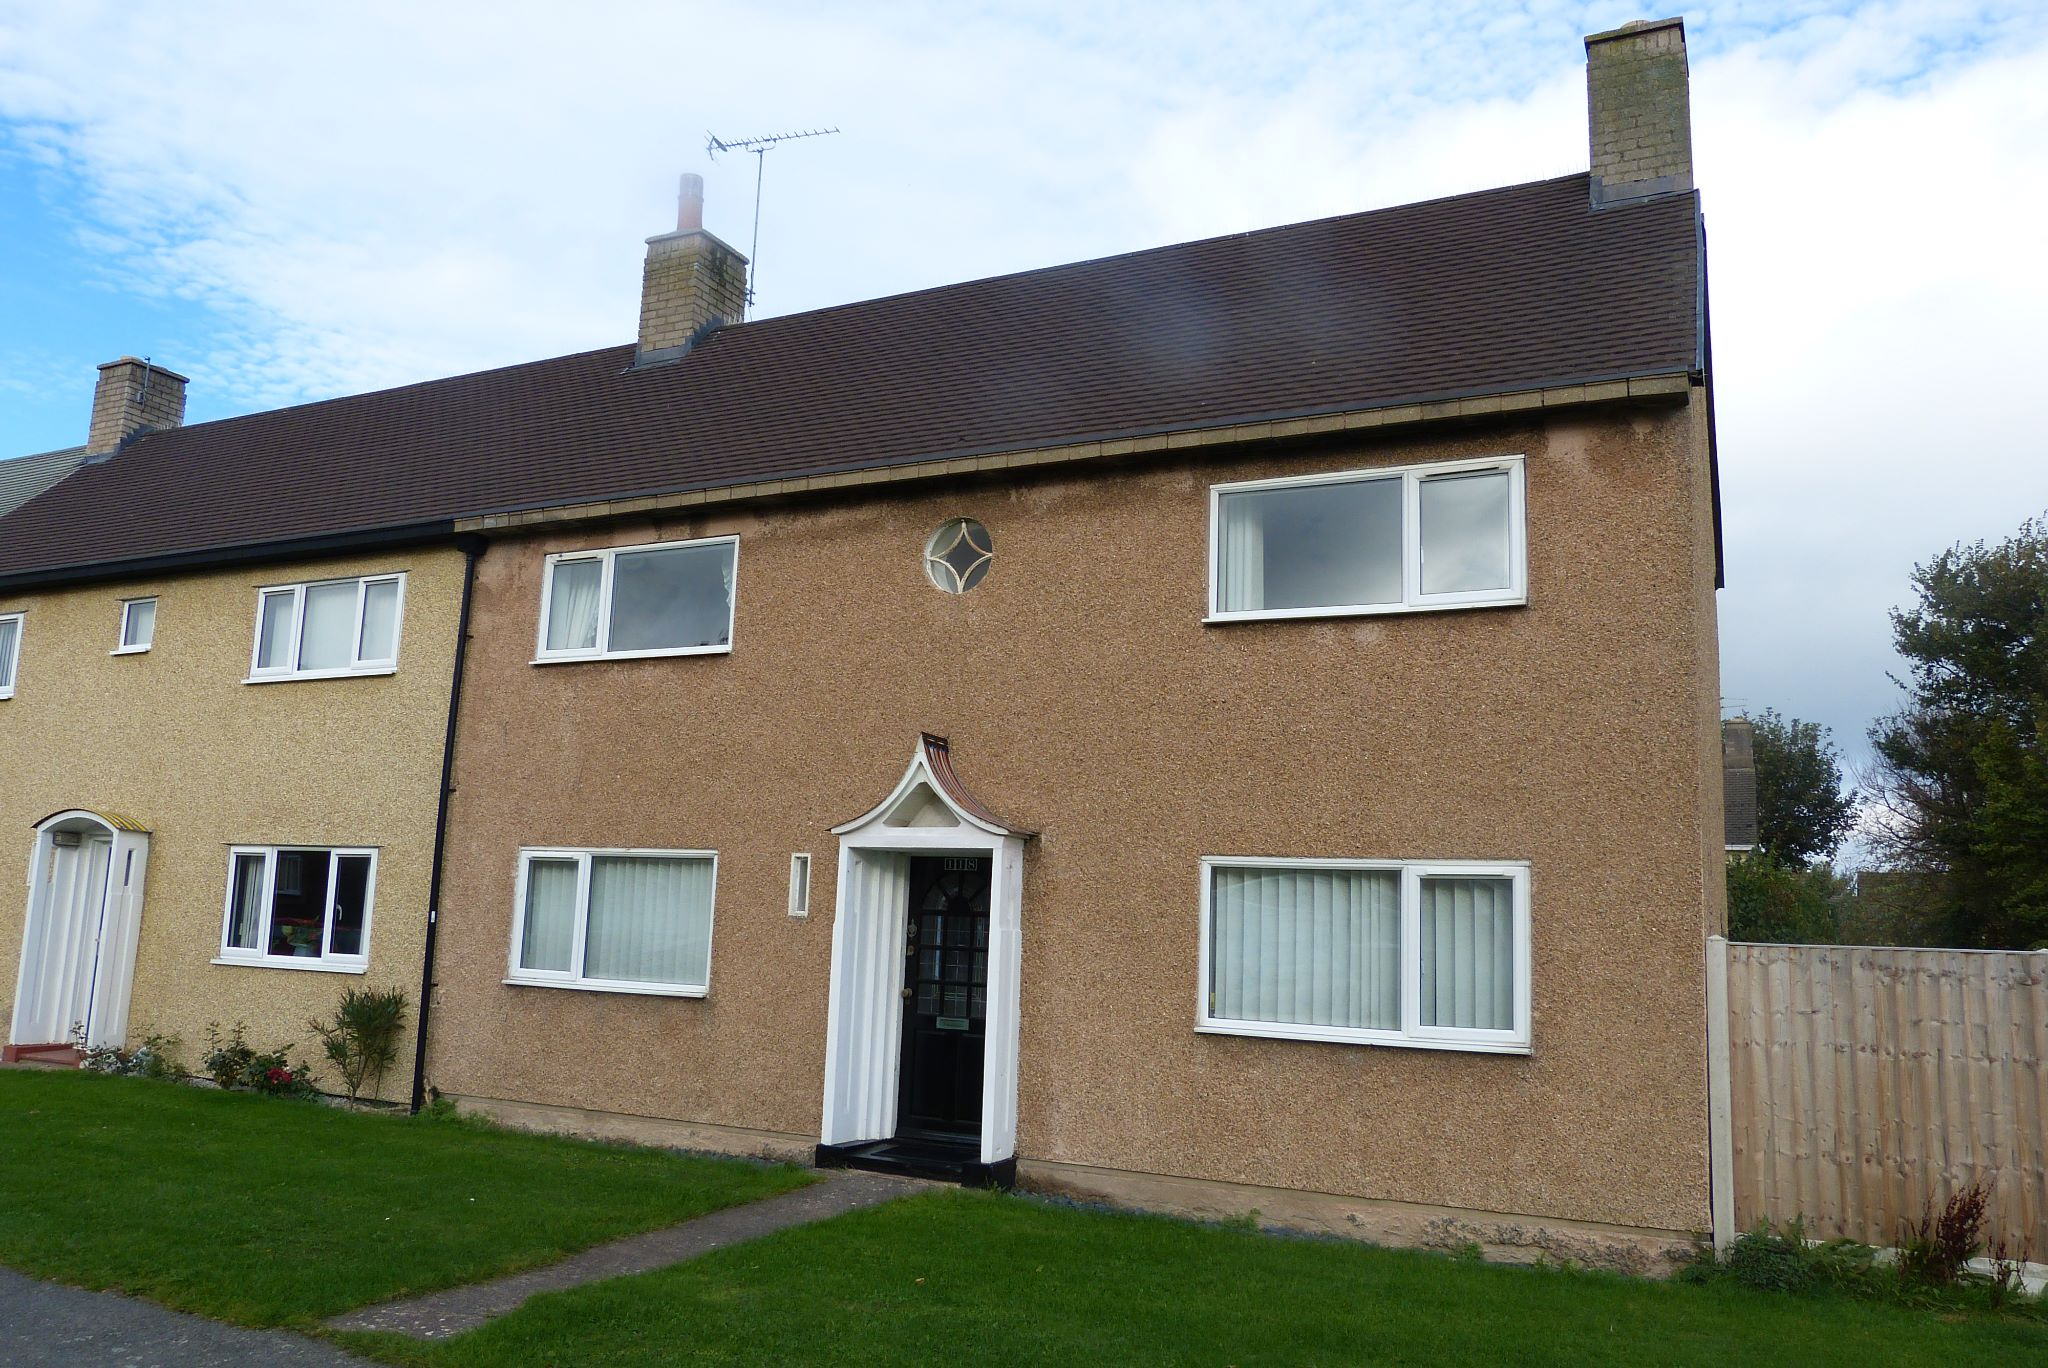 3 bedroom end terraced house SSTC in Abergele - Front